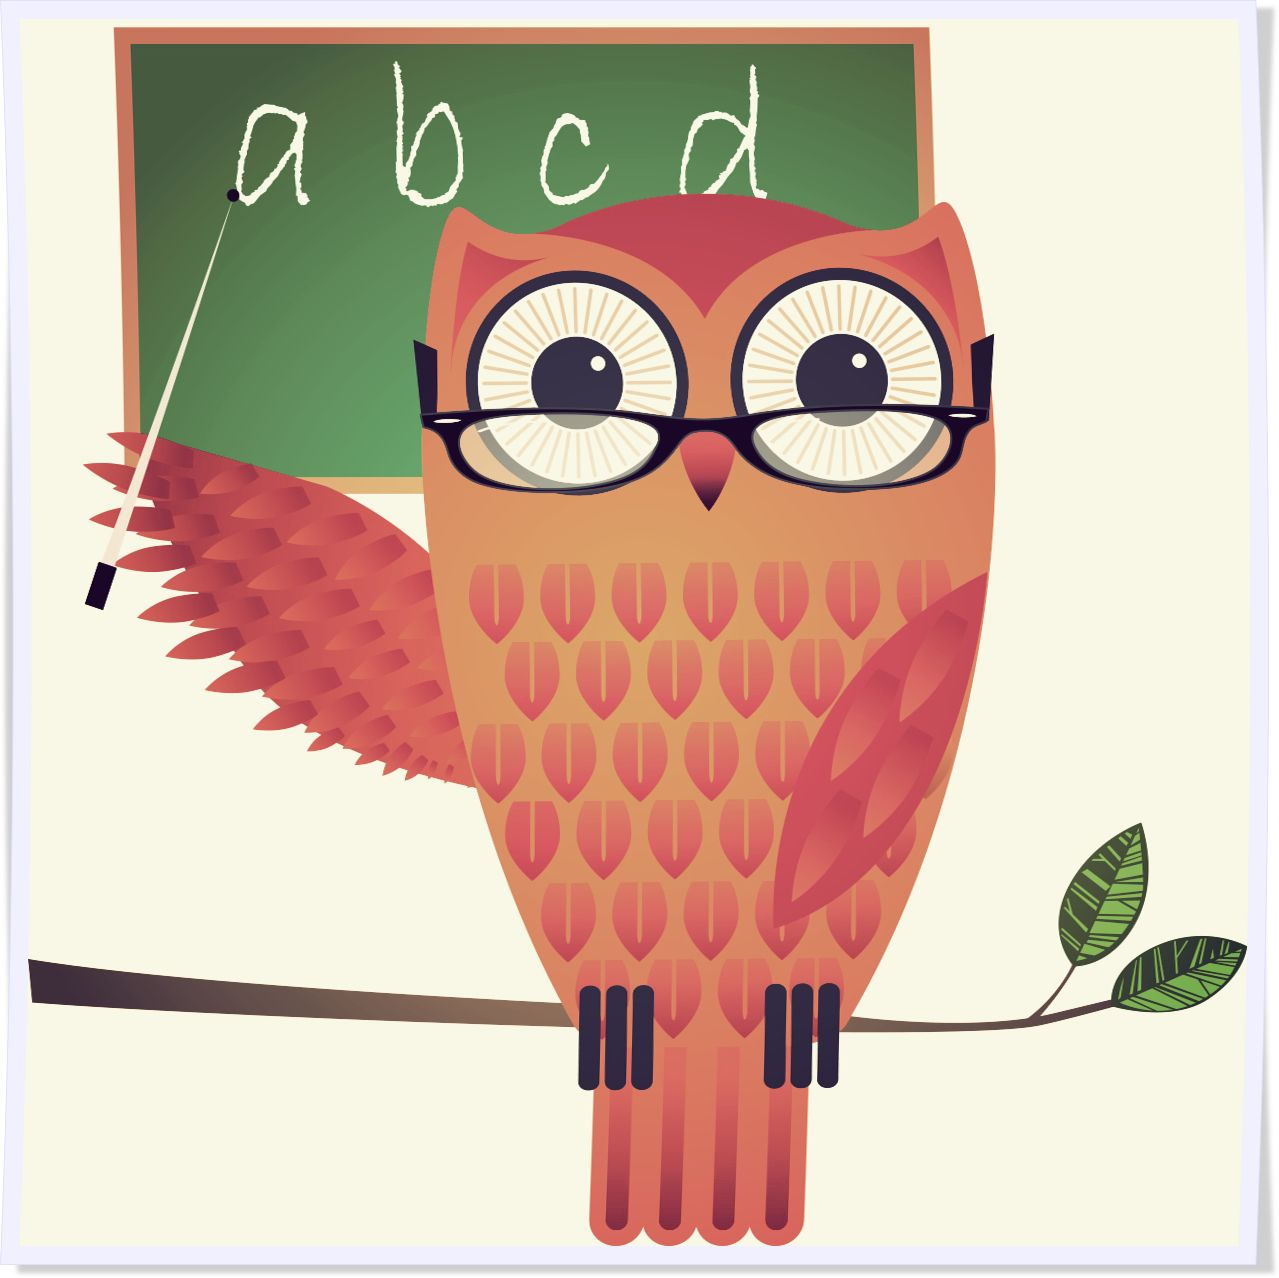 Ask our Owl\' from mytoys blog | Owls | Pinterest | Schlau, Eule und ...